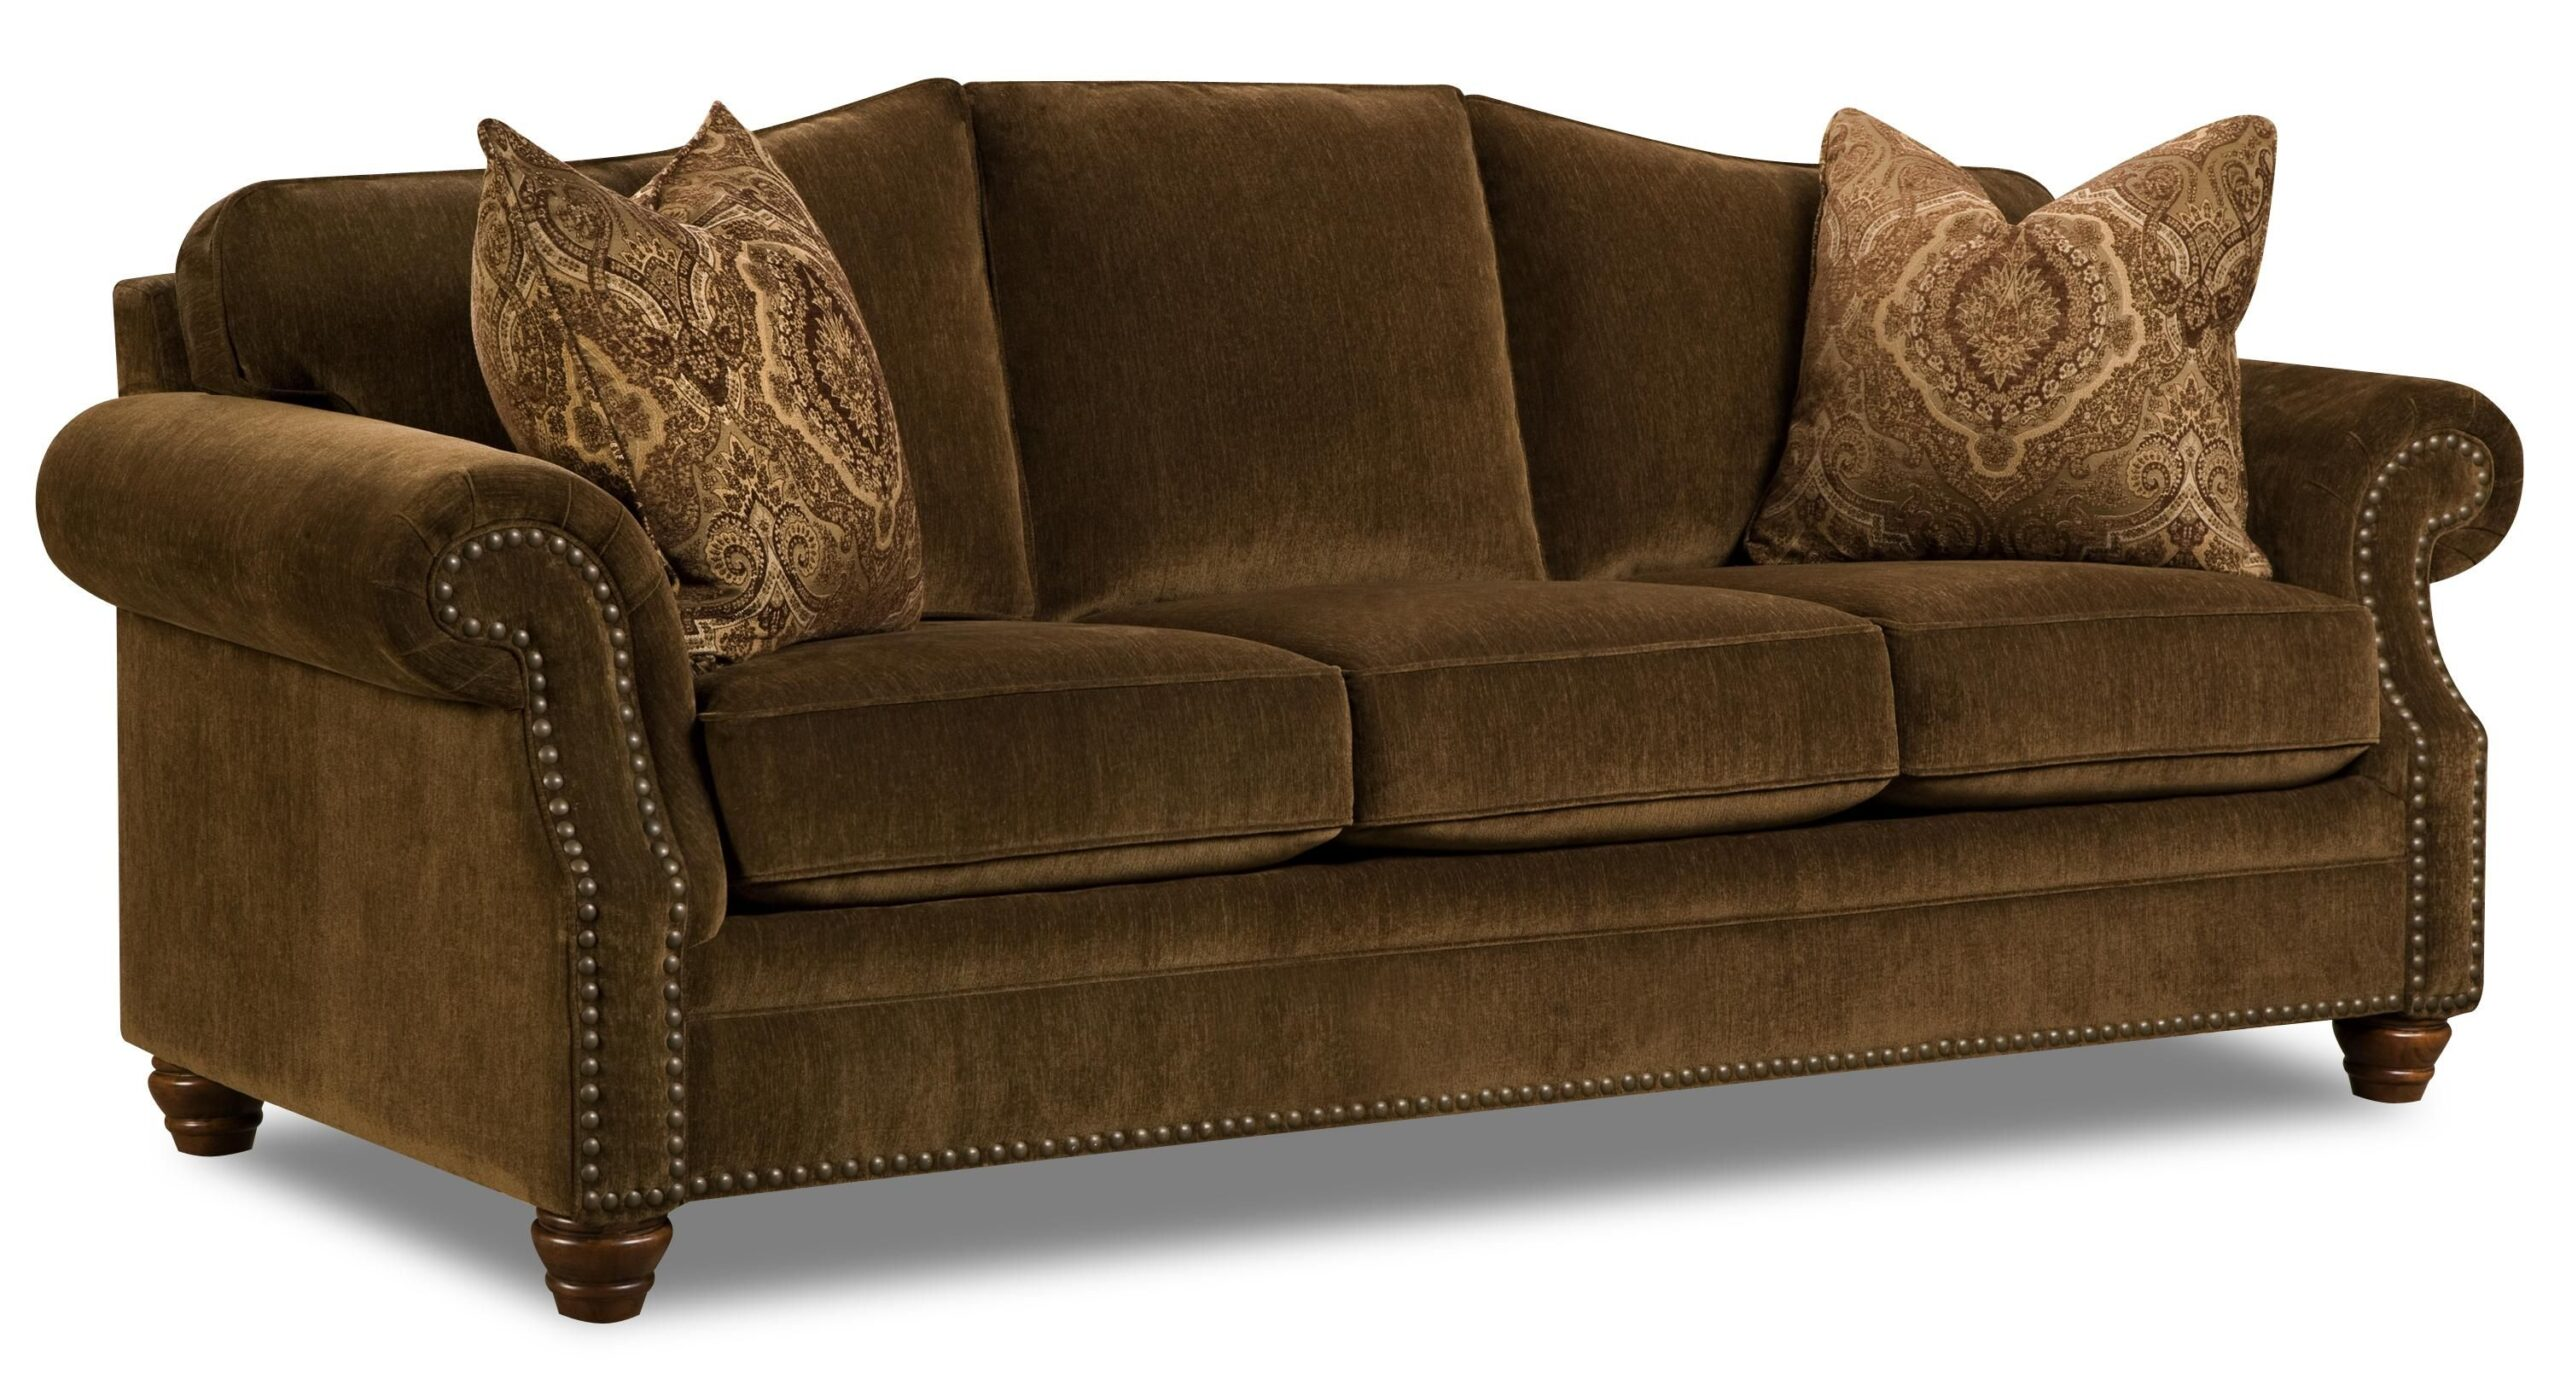 Full Size of Chippendale Sofa Slipcover Reproduction History Furniture For Sale Cover Uk Table Lane Style Sofas Ethan Allen Beziehen Auf Raten De Sede Lagerverkauf Hussen Sofa Chippendale Sofa